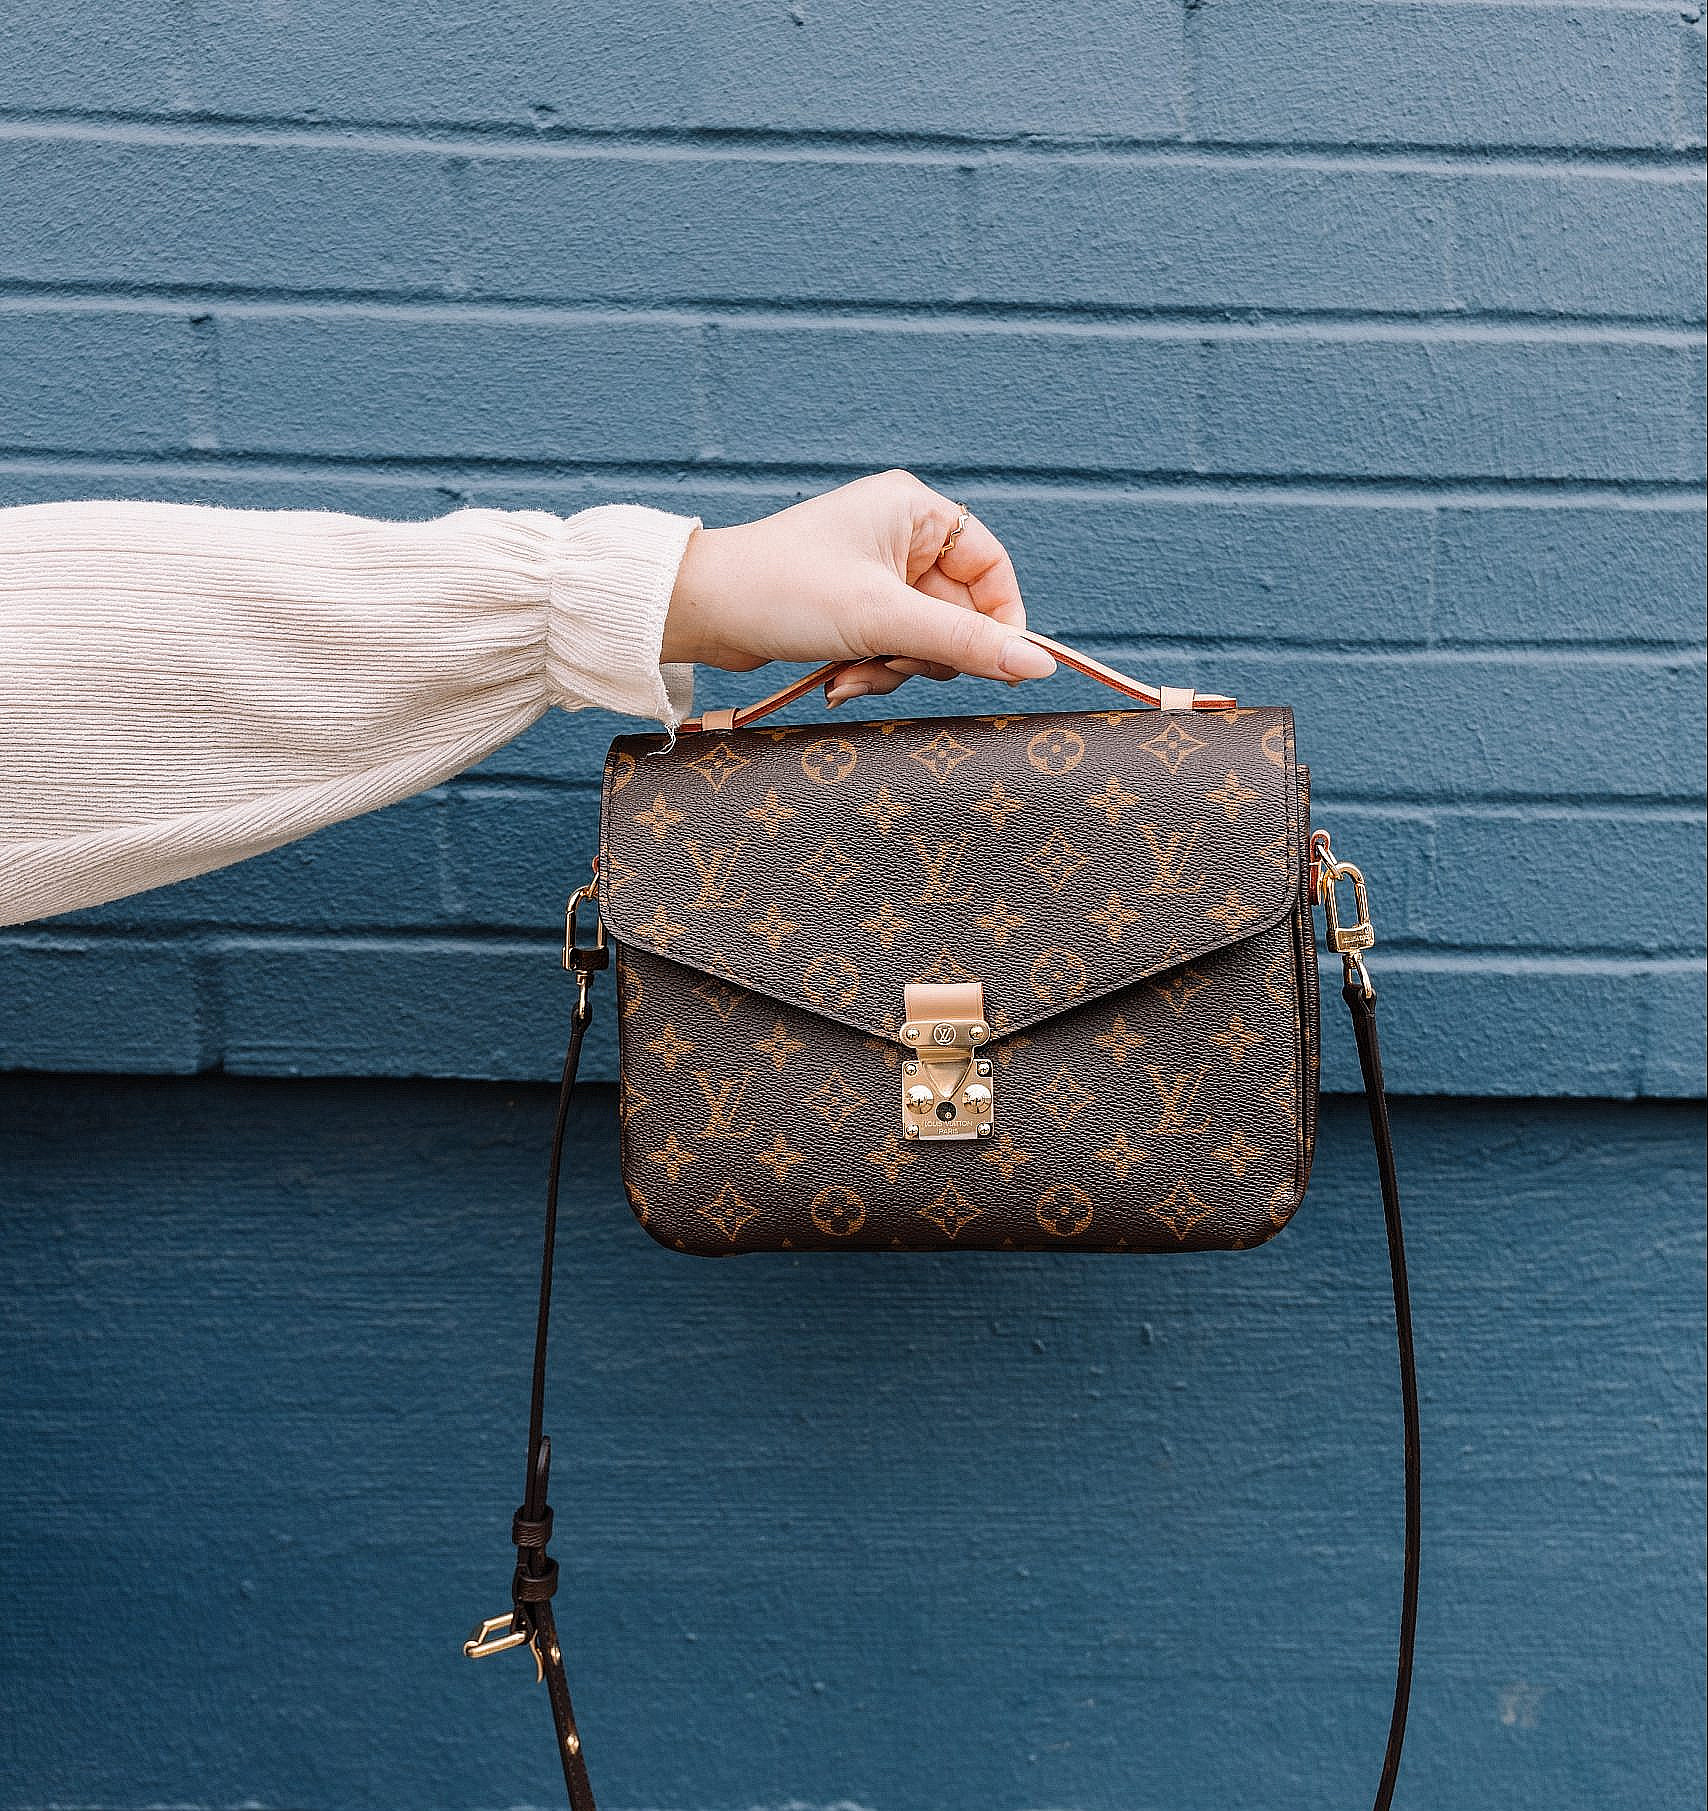 Vuitton and on and on